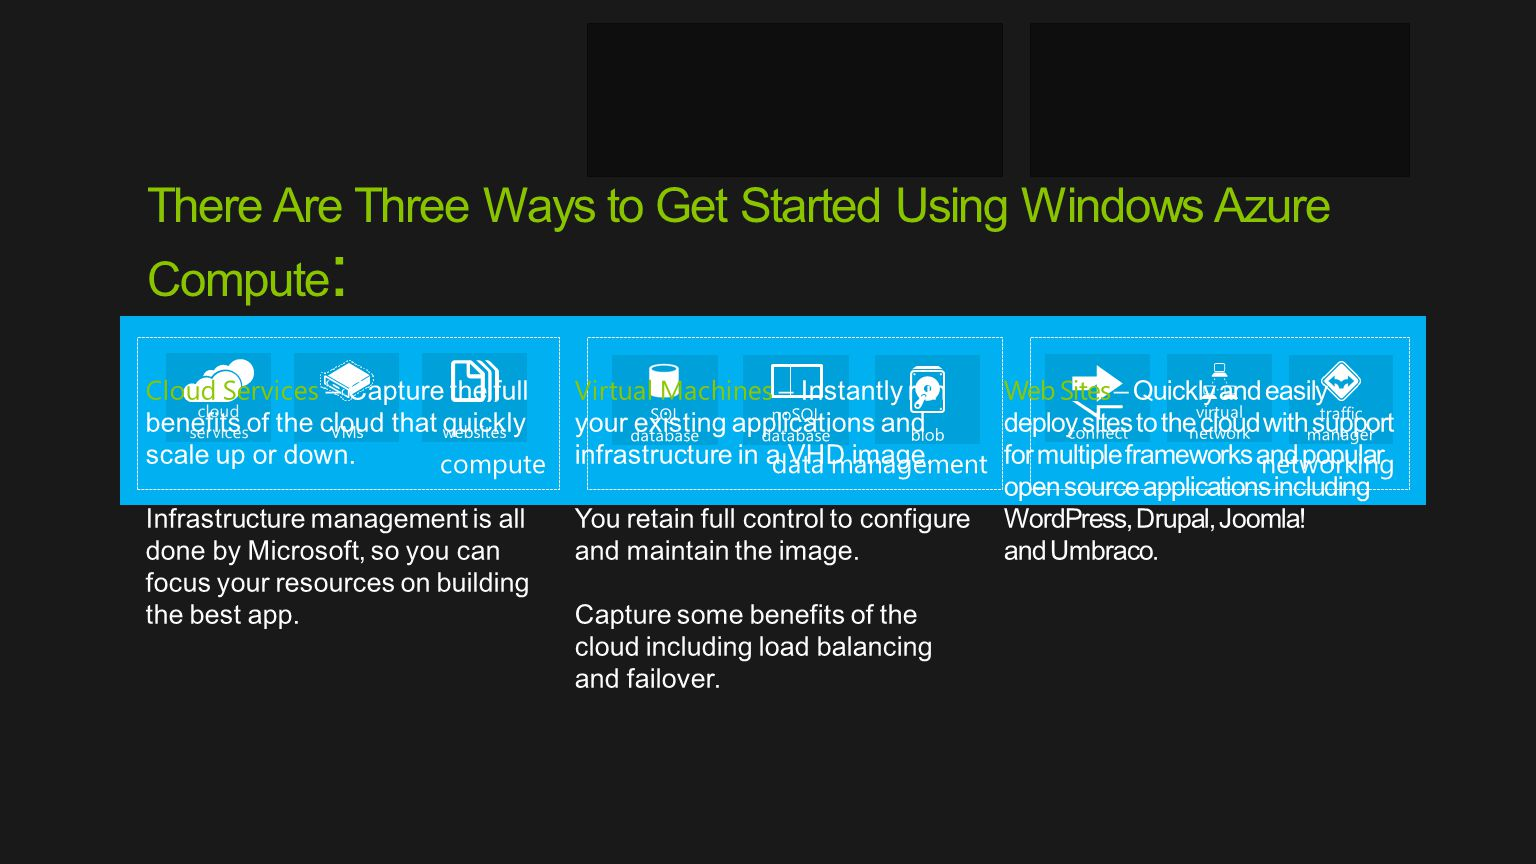 There Are Three Ways to Get Started Using Windows Azure Compute: